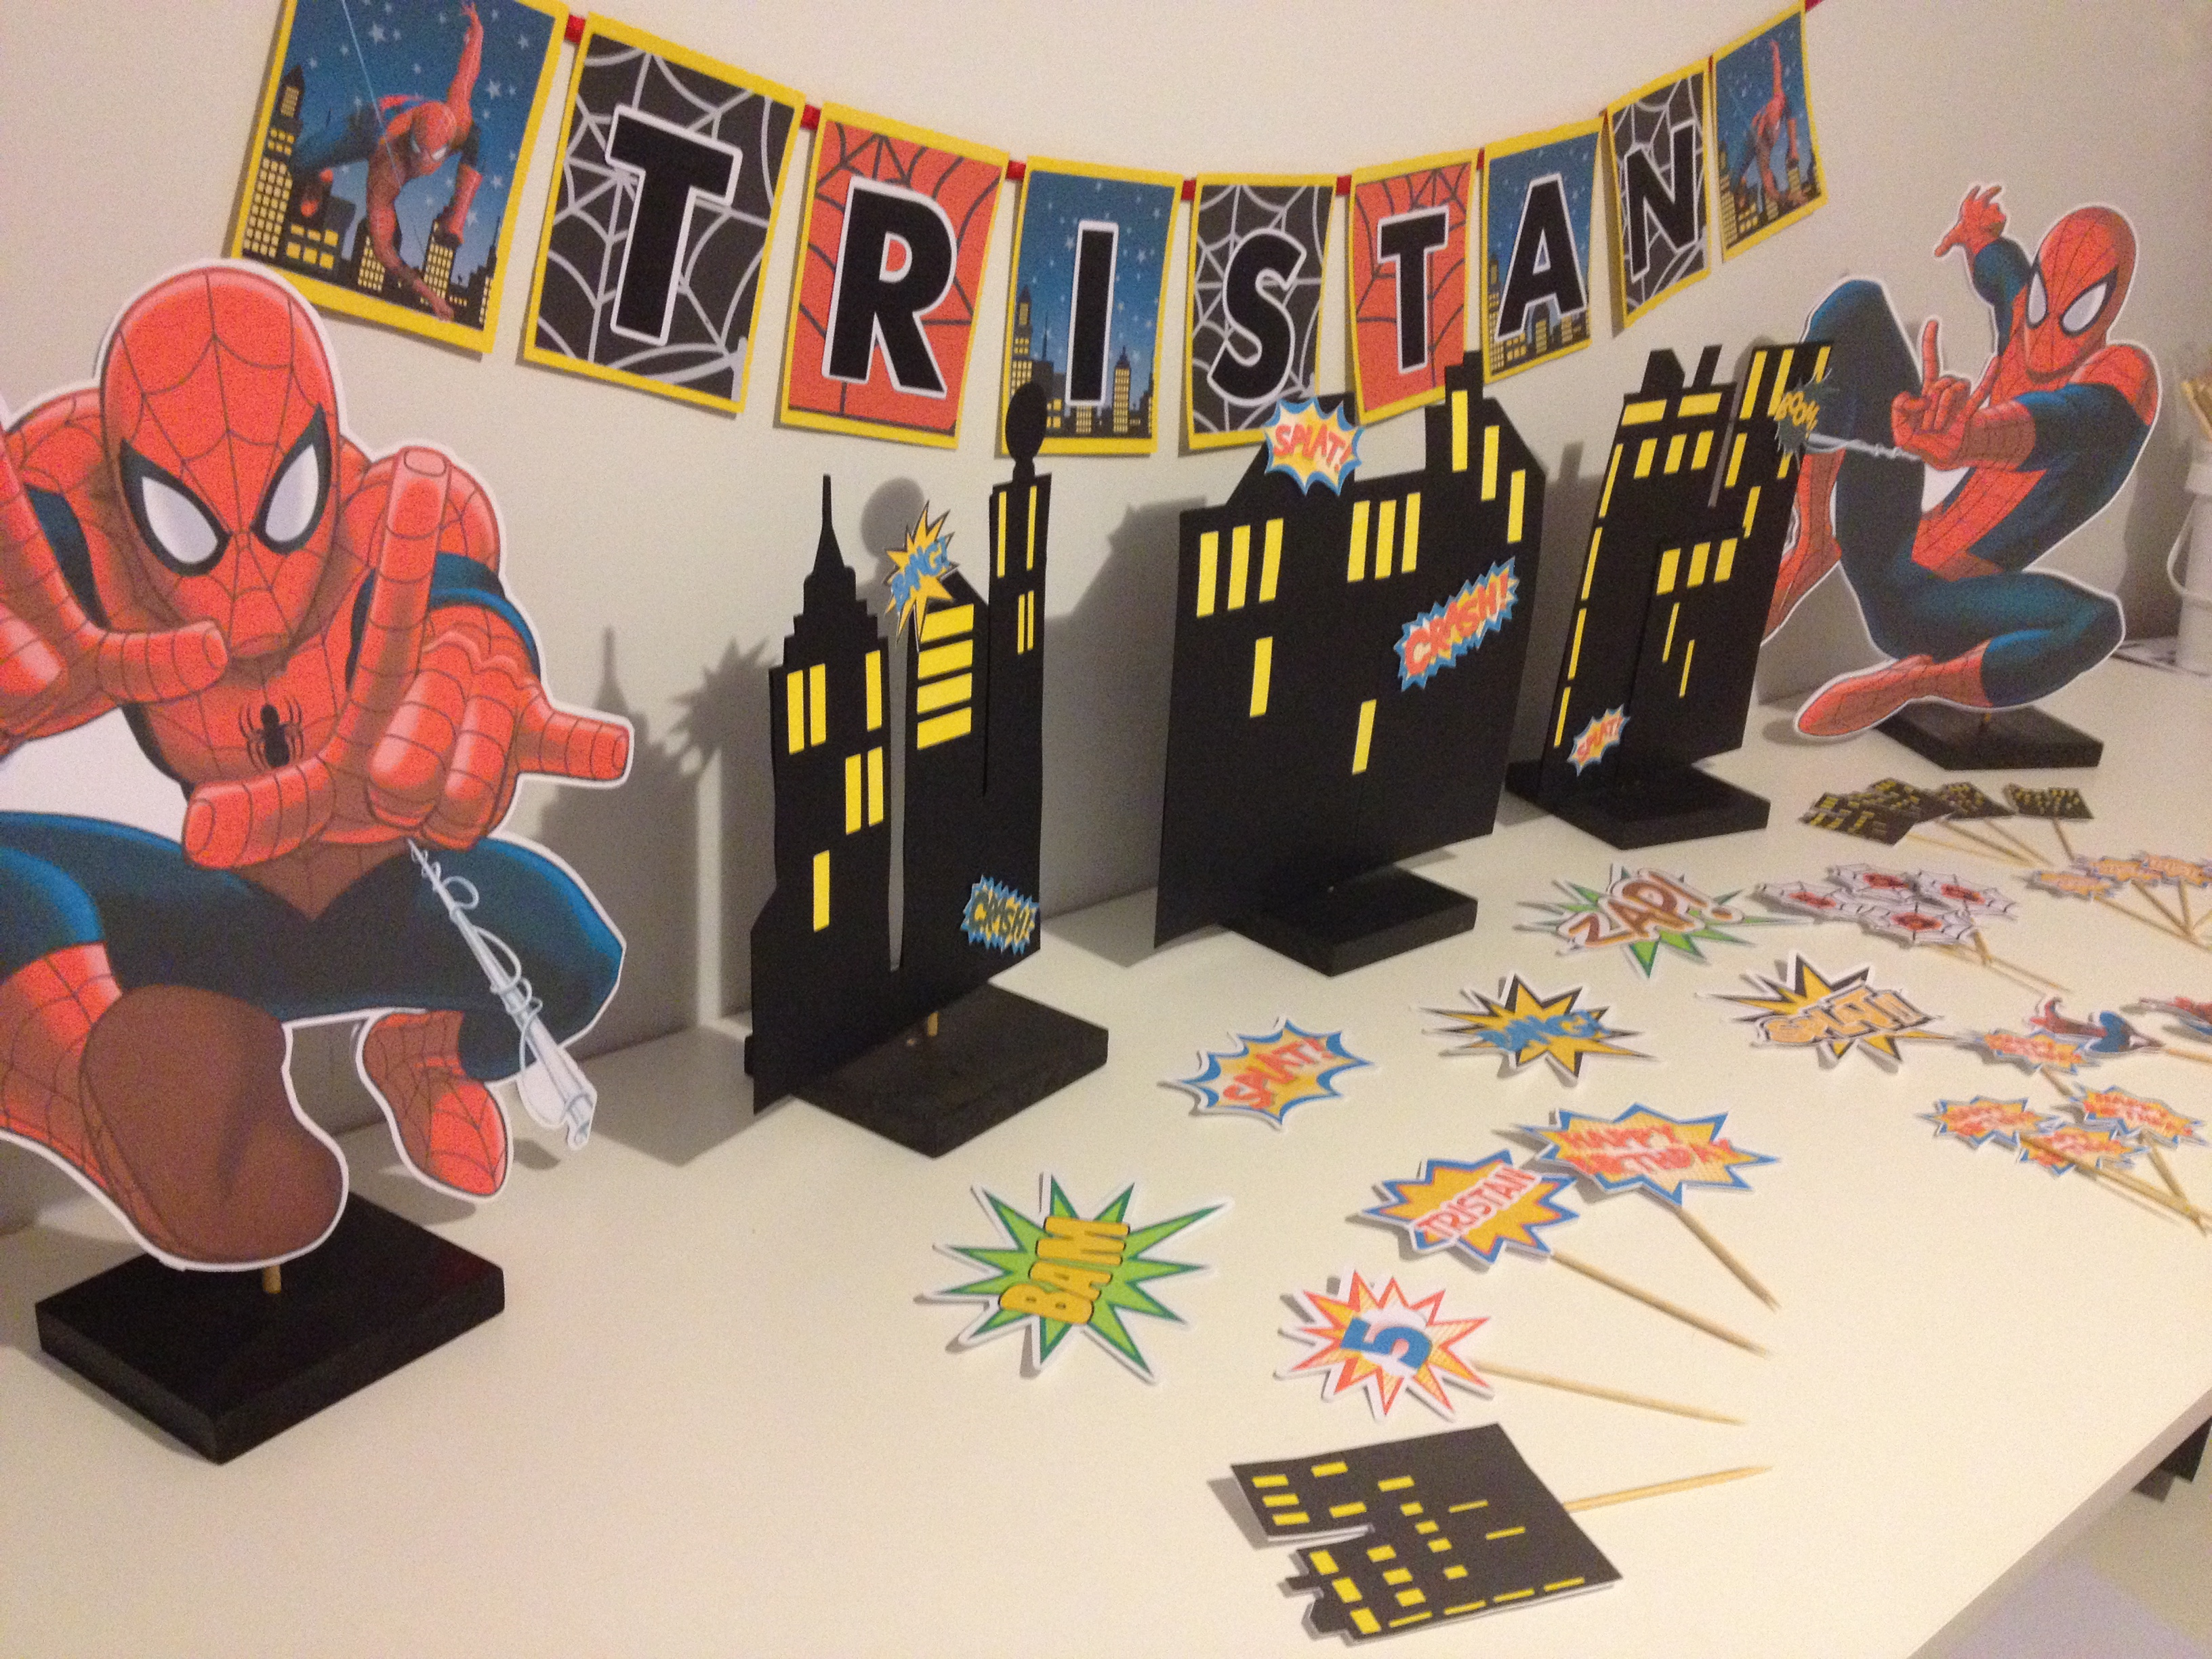 How To Make A Spiderman Superhero Happy Birthday Banner With Free Printable At Home Ellierosepartydesigns Com